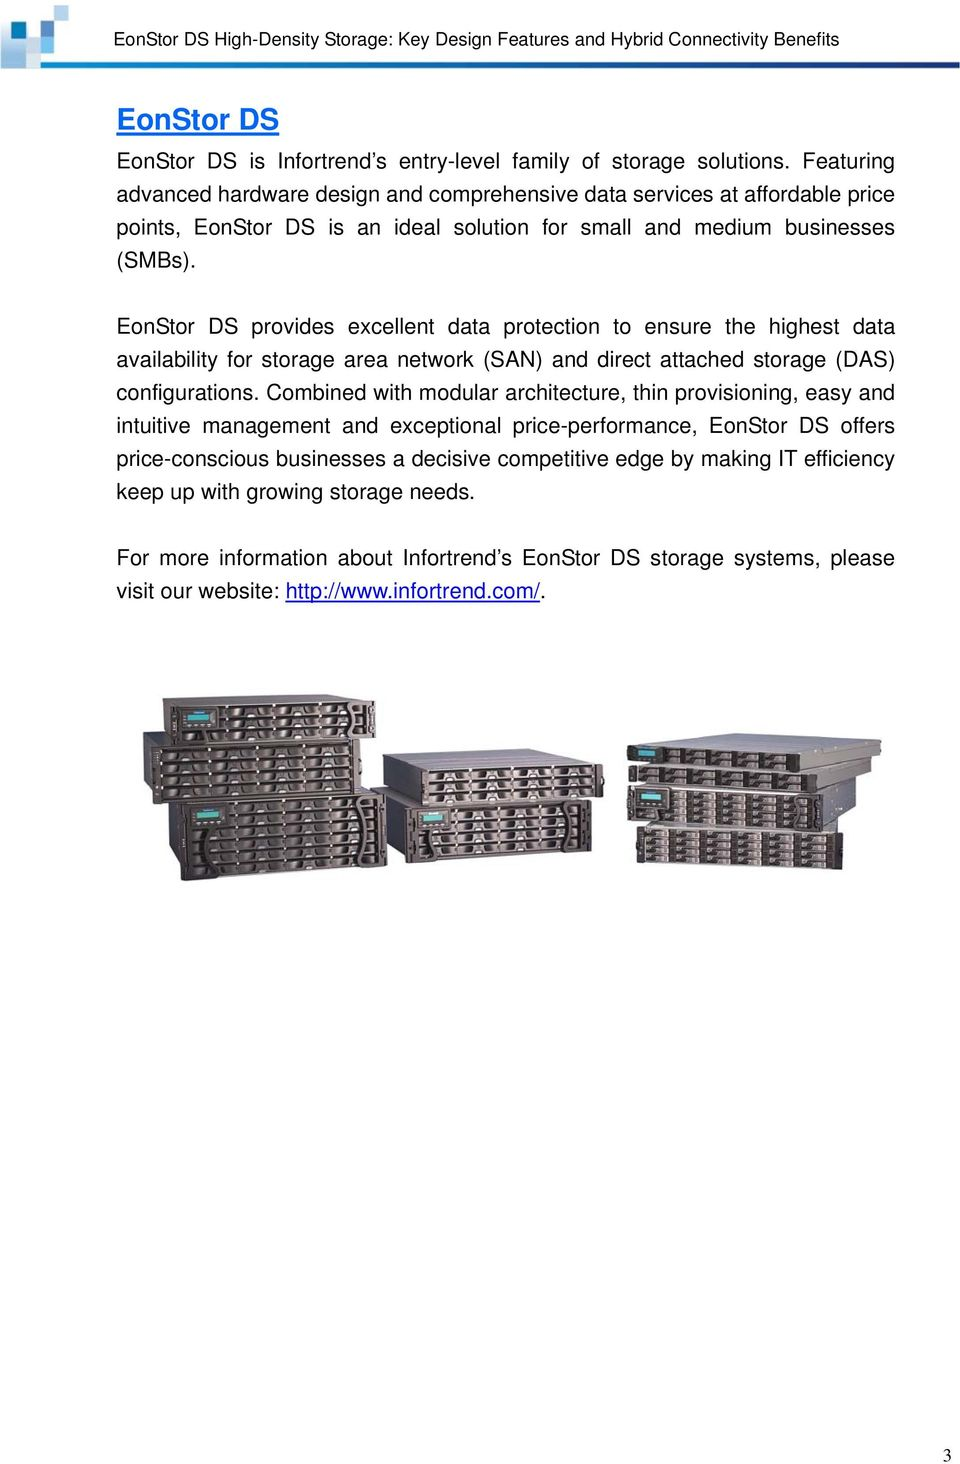 EonStor DS provides excellent data protection to ensure the highest data availability for storage area network (SAN) and direct attached storage (DAS) configurations.